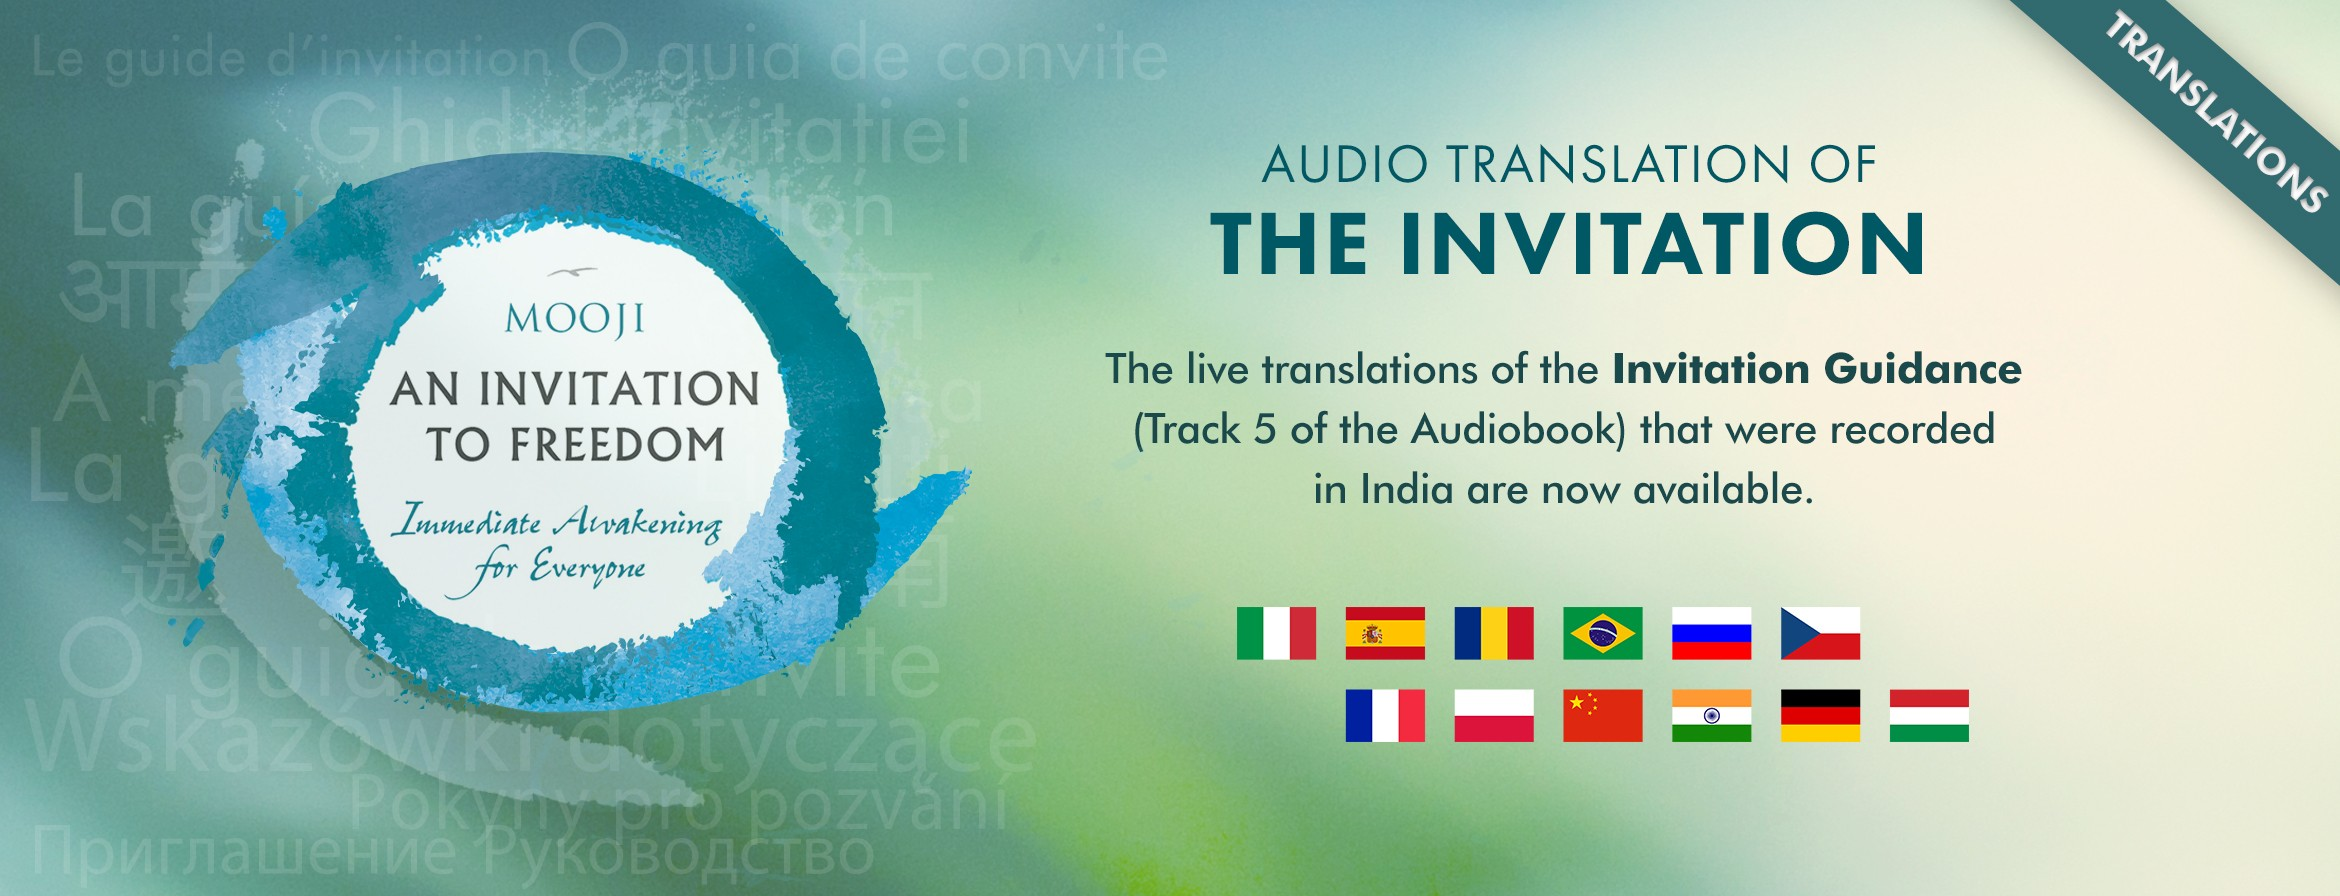 Audio Translation of The Invitation